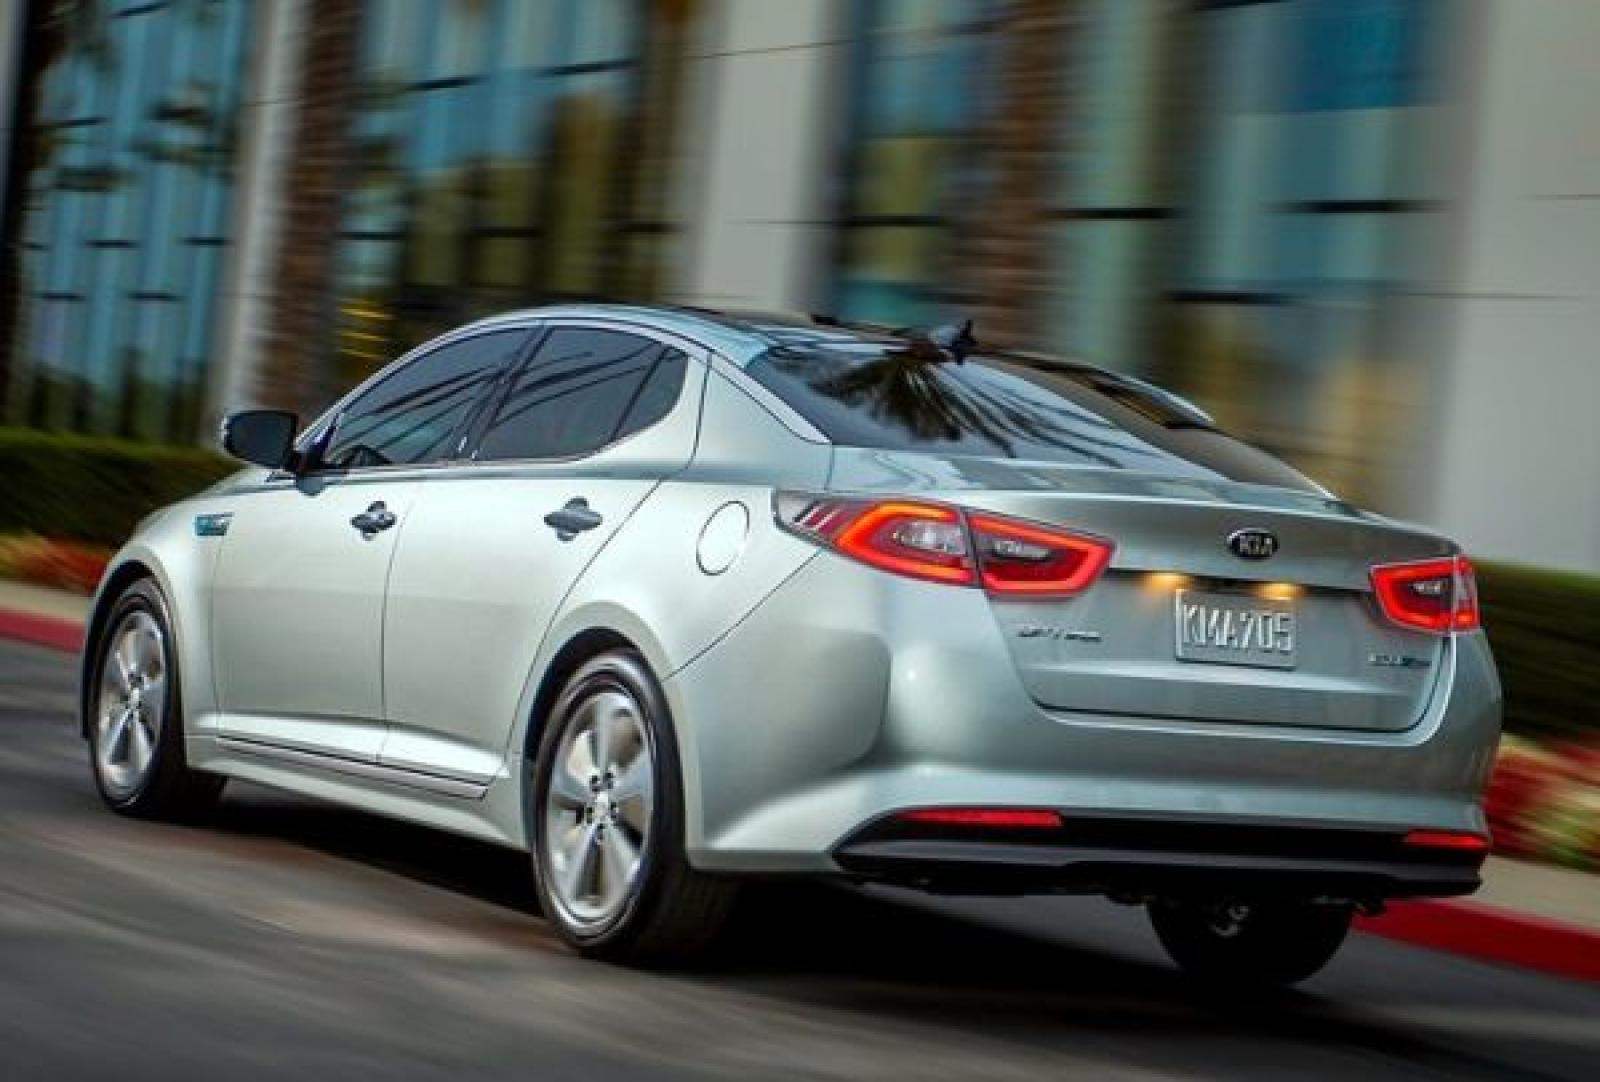 optima price reviews lx exterior features sedan hybrid photos kia